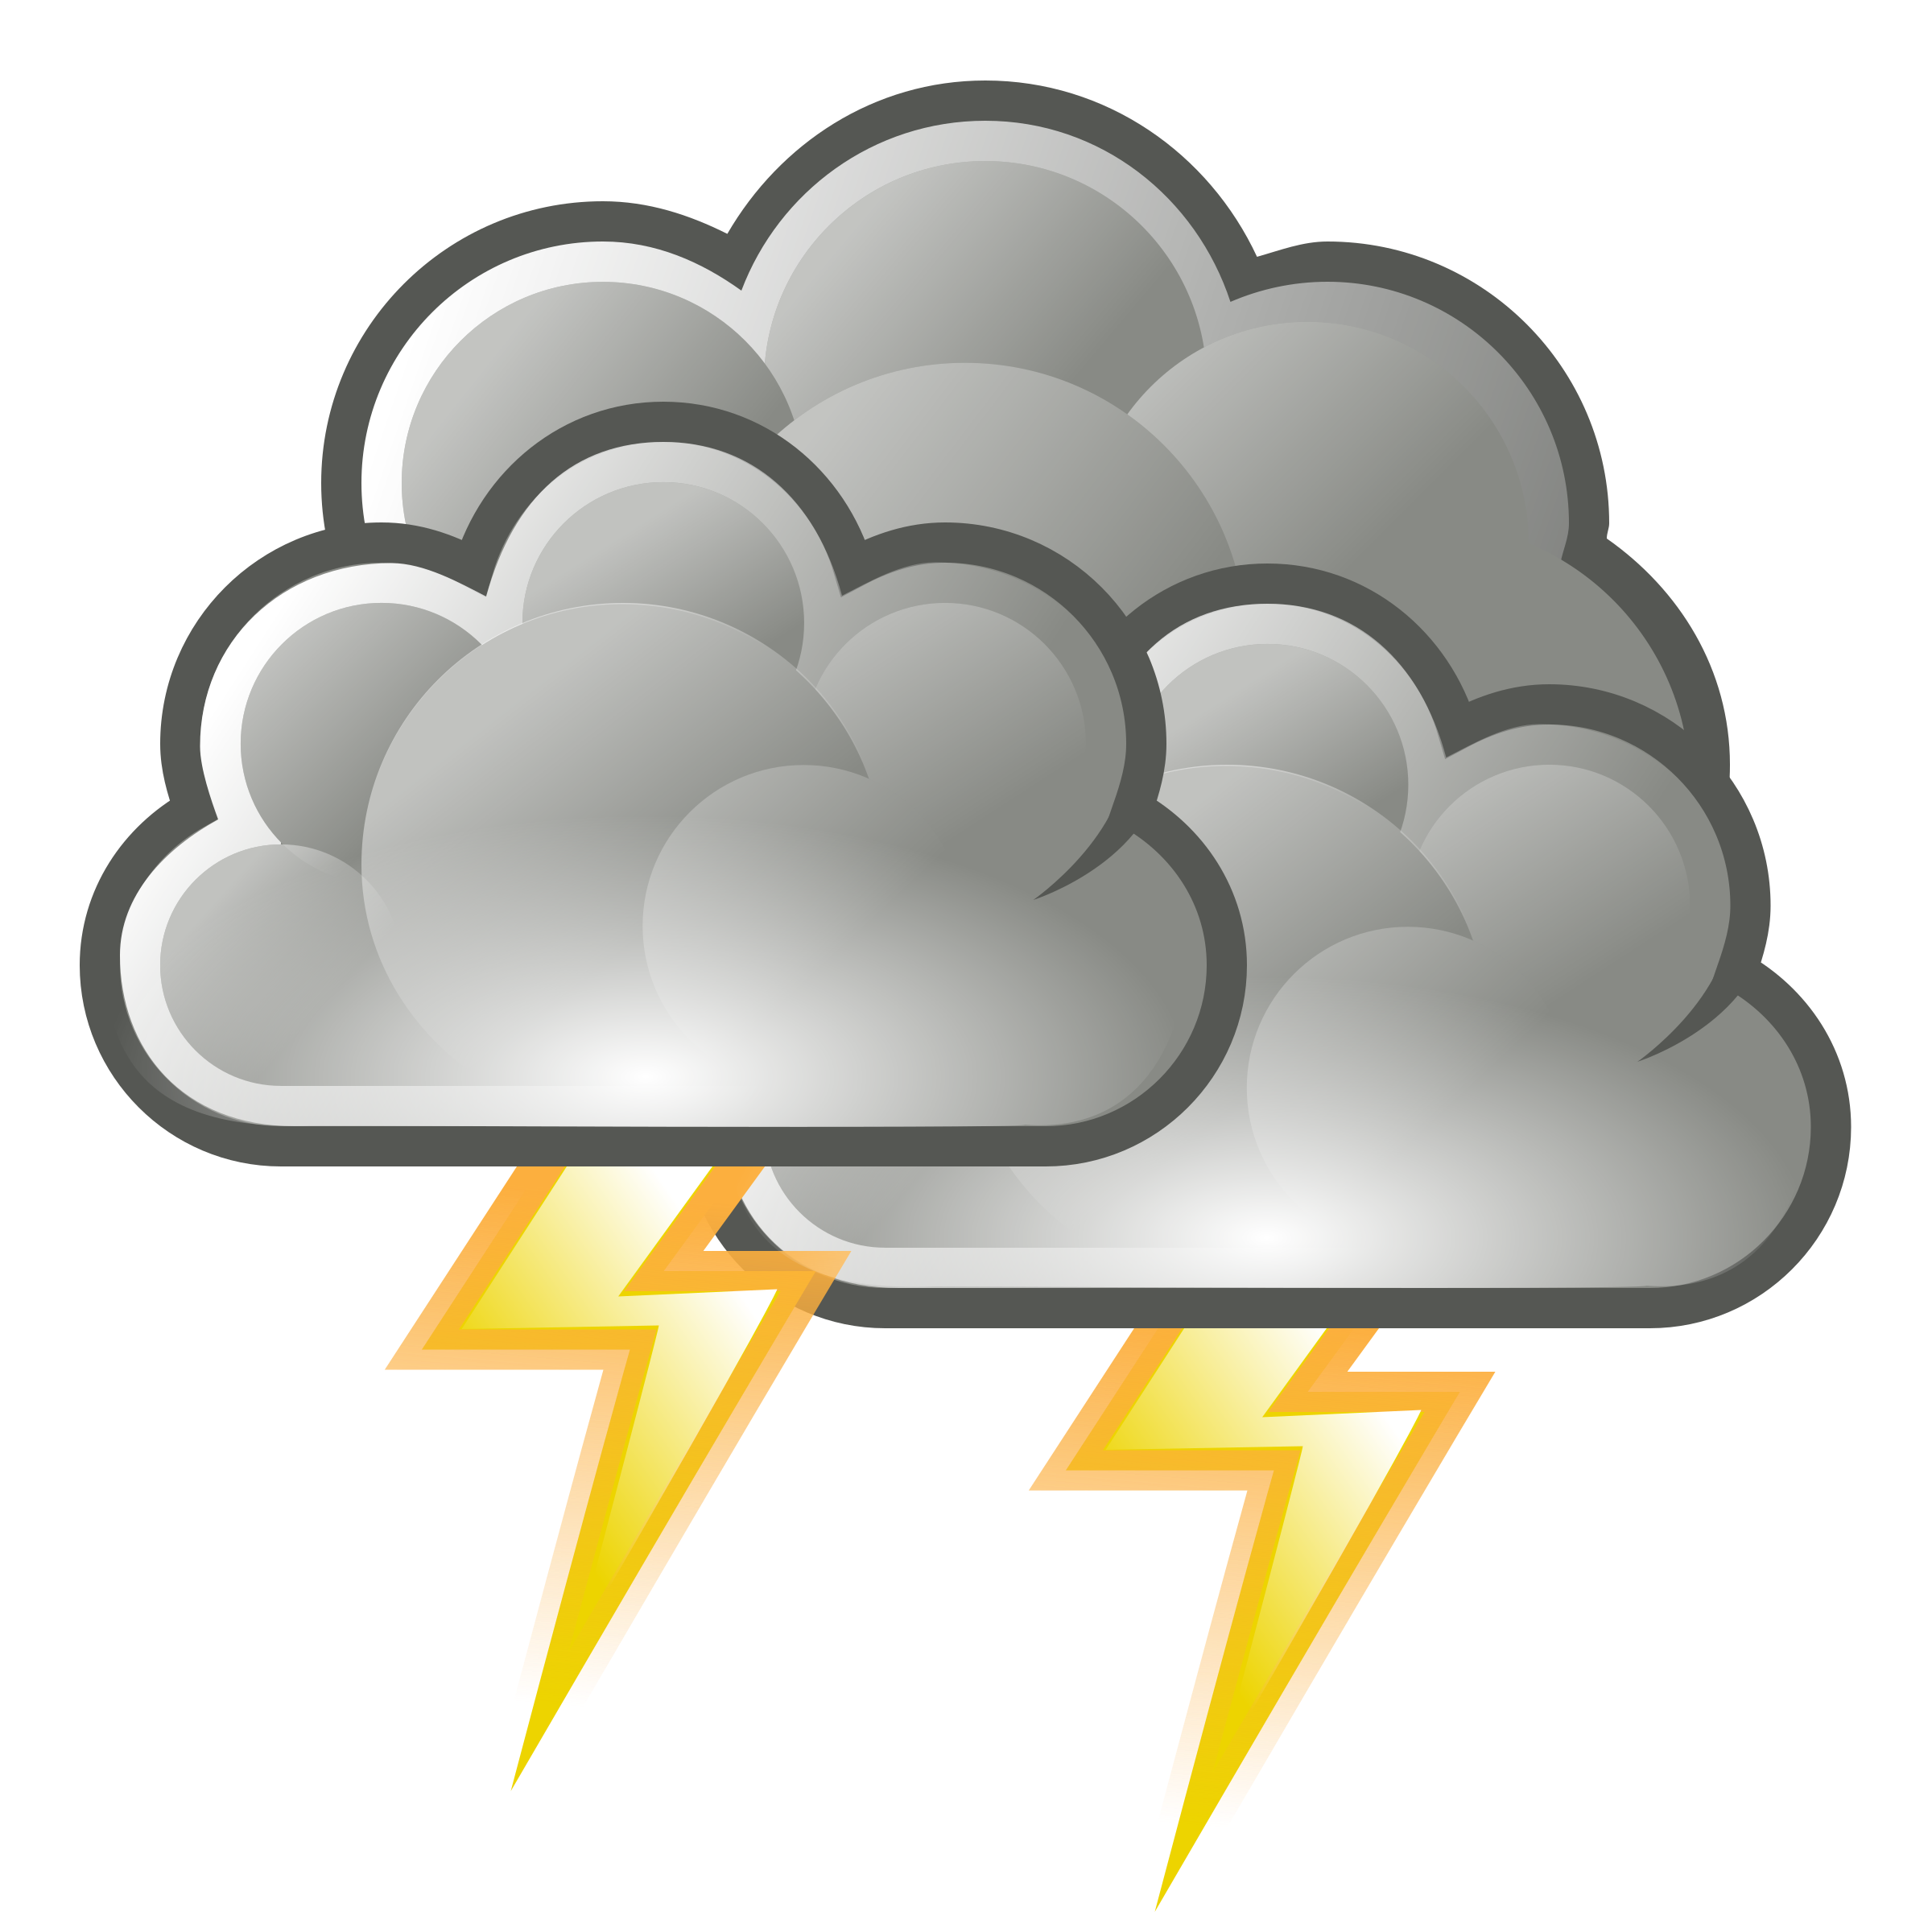 2400x2400 Storm Clipart Severe Weather